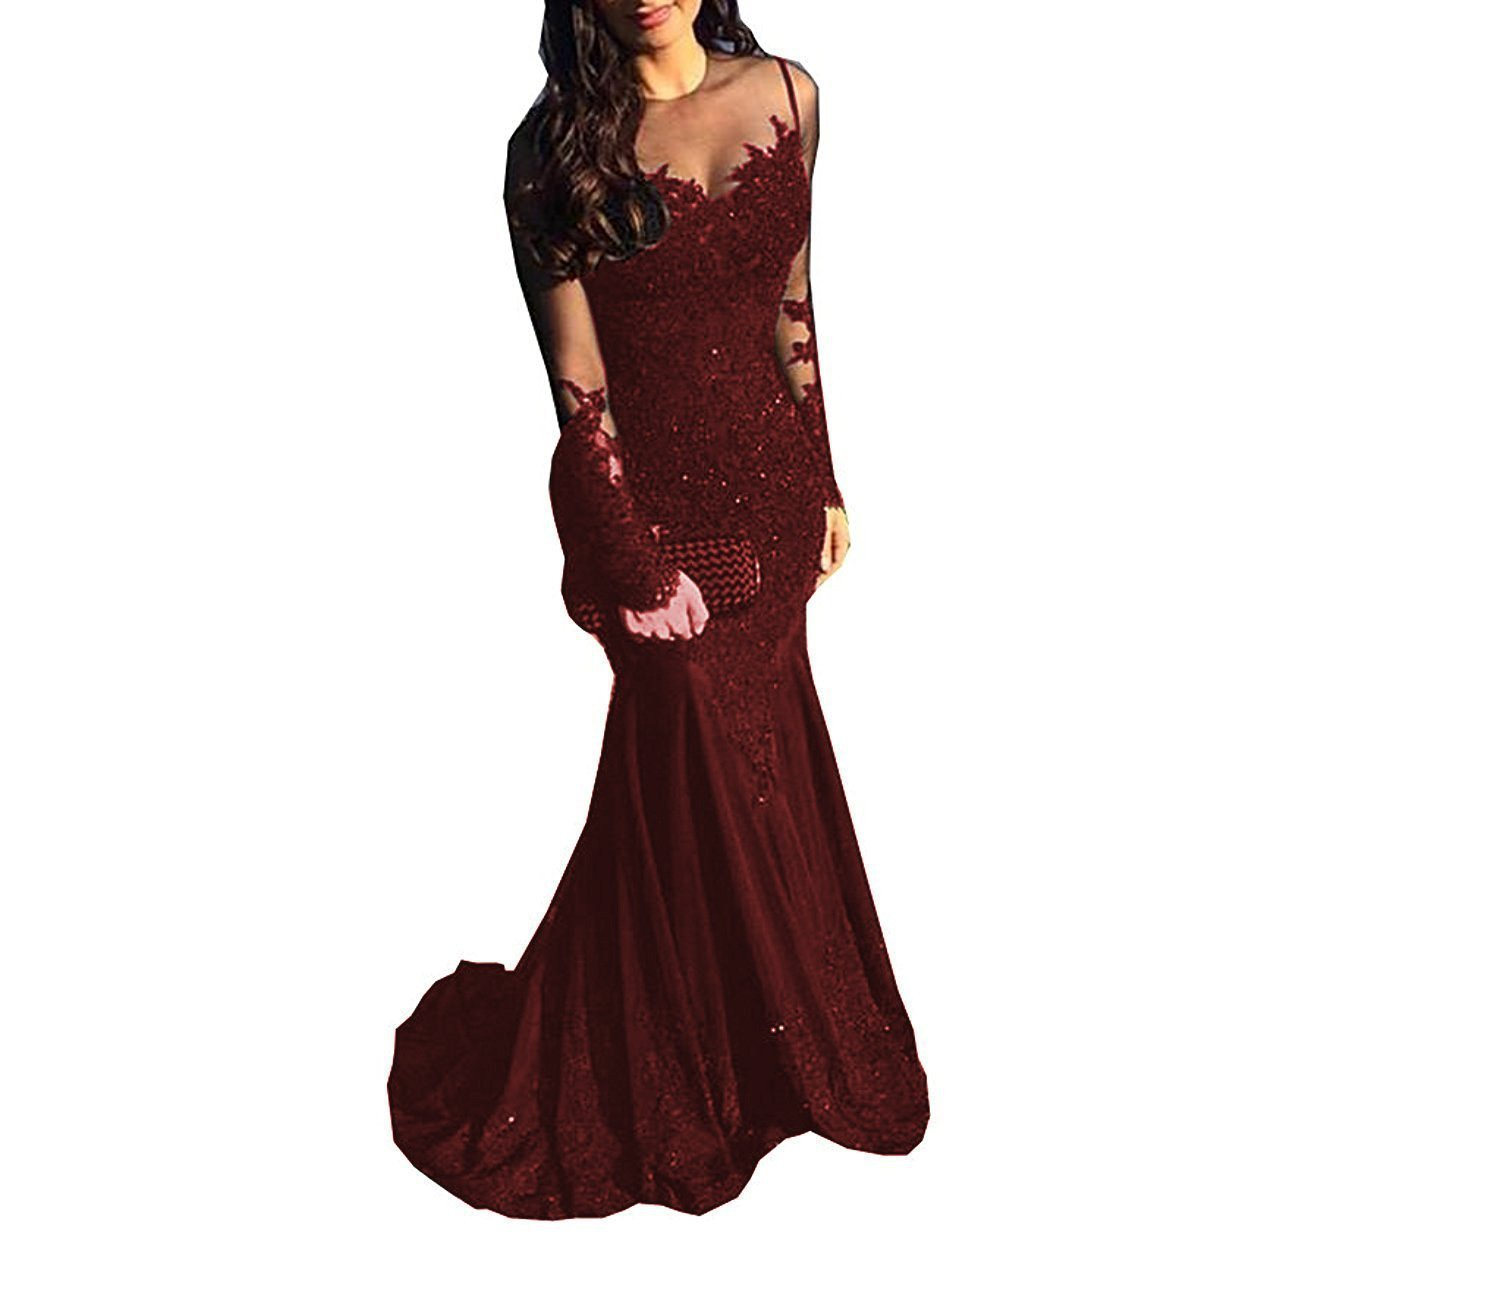 1347c46512ea XingMeng Lace Mermaid Prom Dresses 2019 Beaded Long Sleeve Formal Wedding Evening  Dress Party Gown Burgundy Size 10